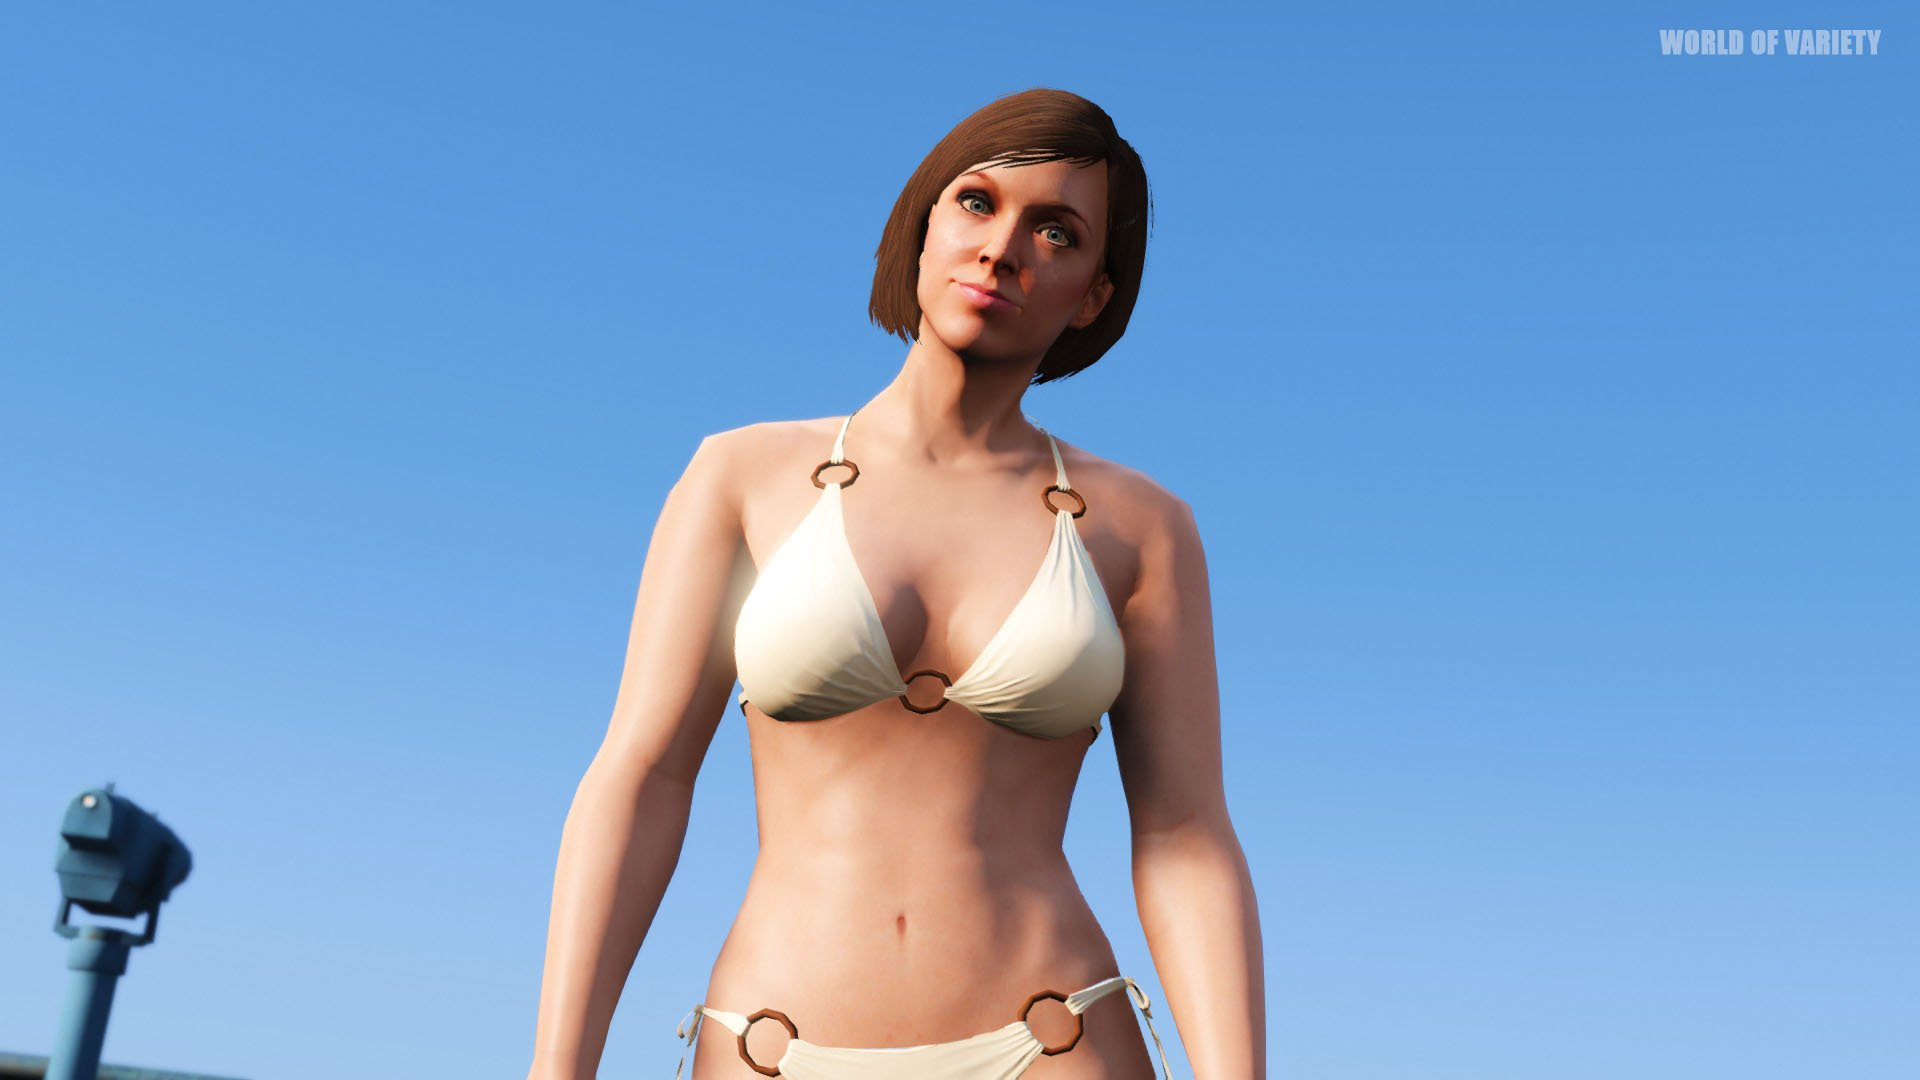 Bikini beach world mods